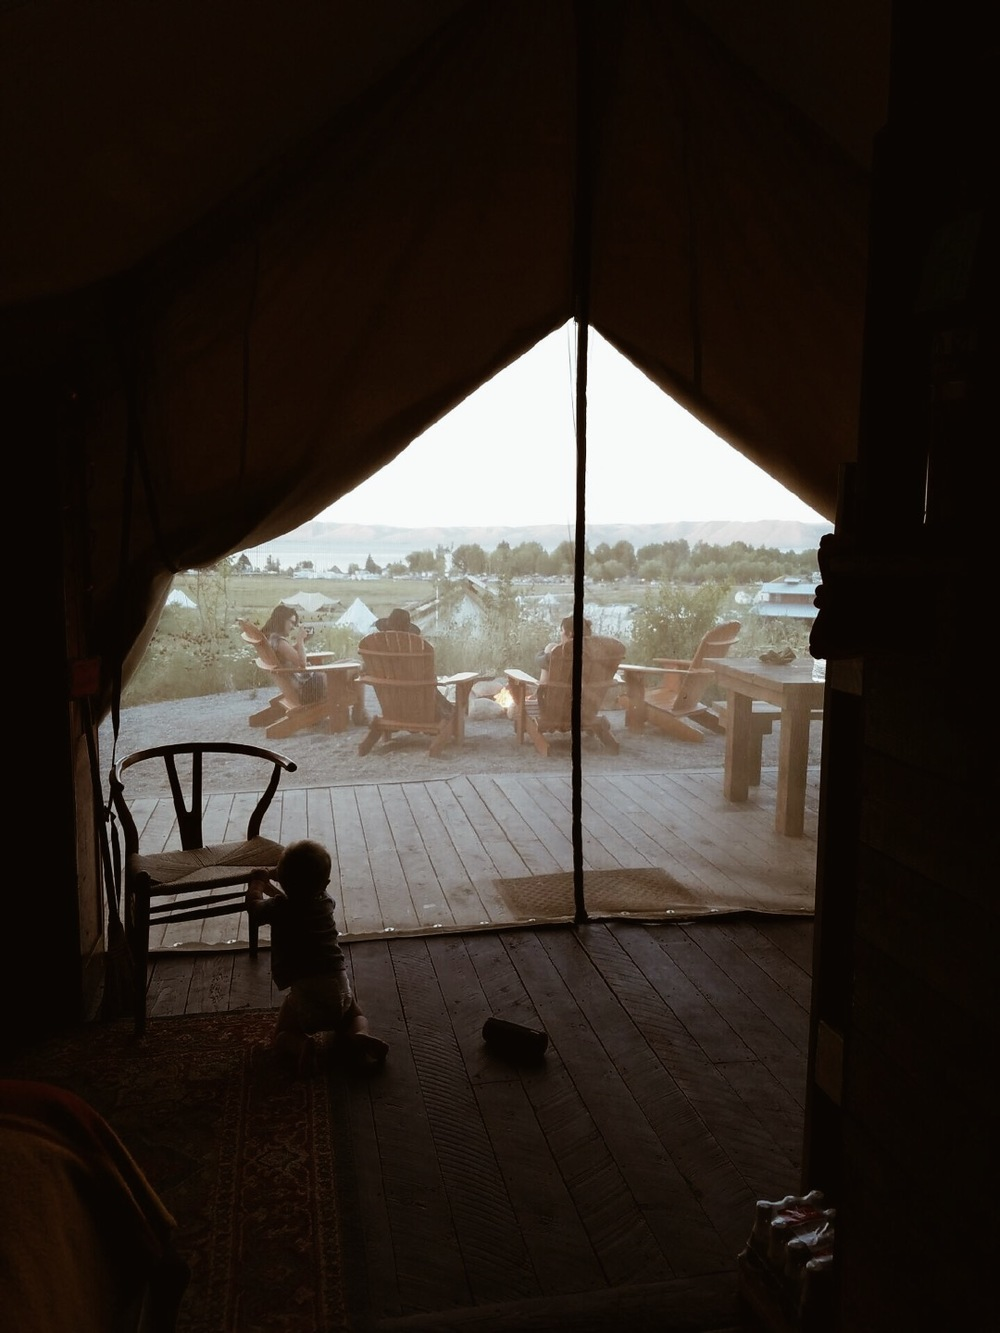 Yellowstone-glamping-tent-at-Conestoga-Ranch-Bear-Lake-Utah